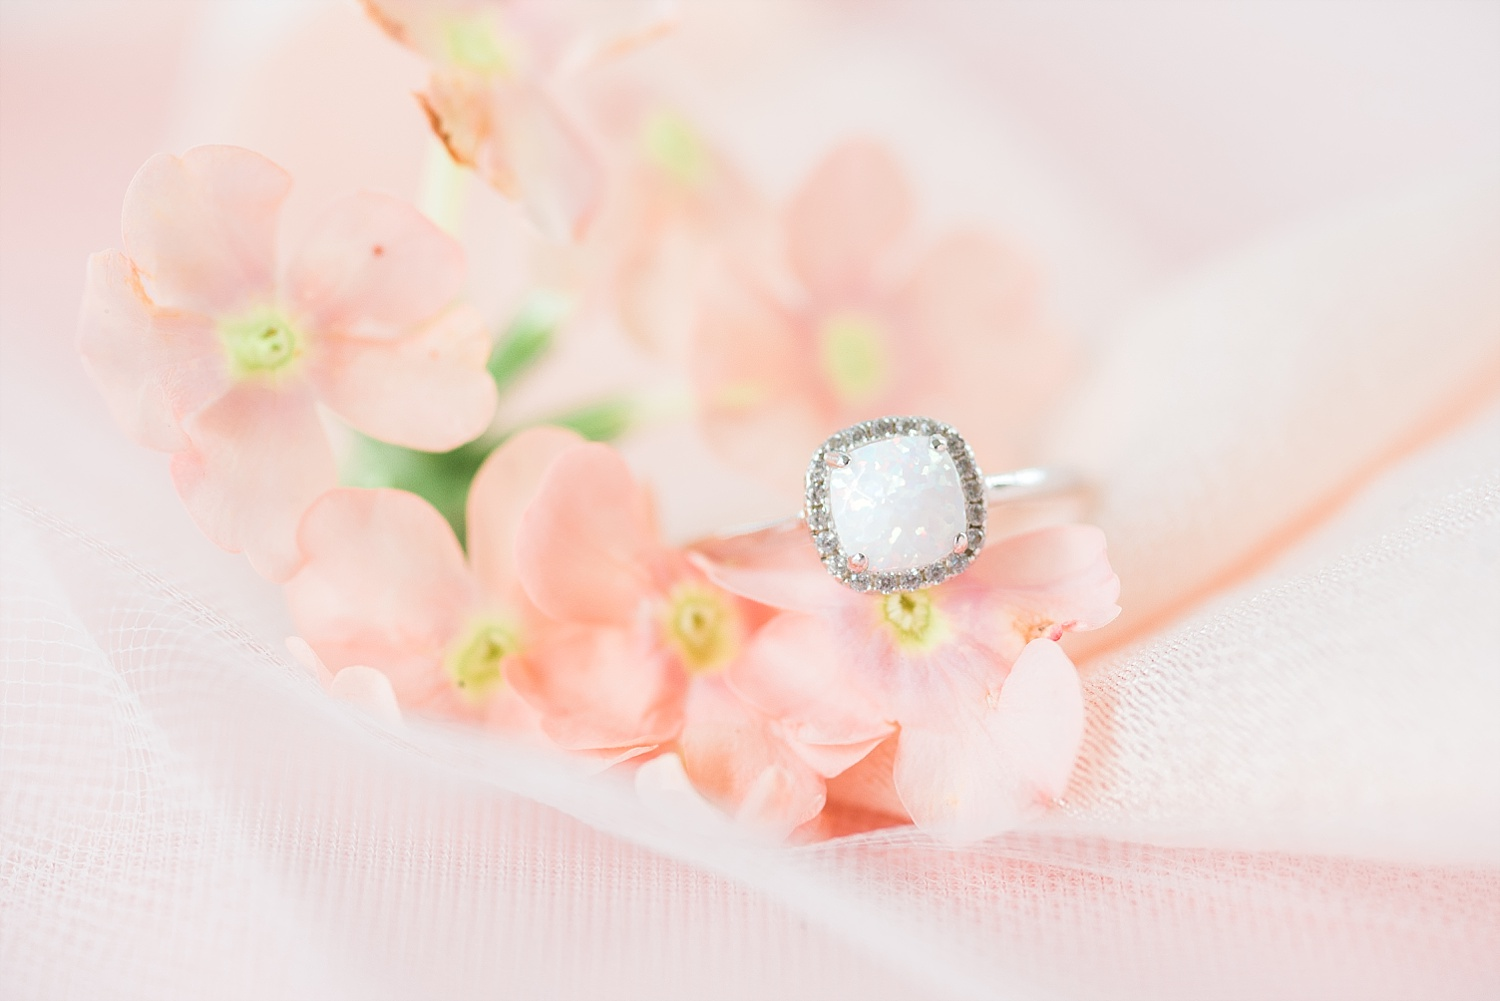 Curtis gave Amy this beautiful ring before the wedding